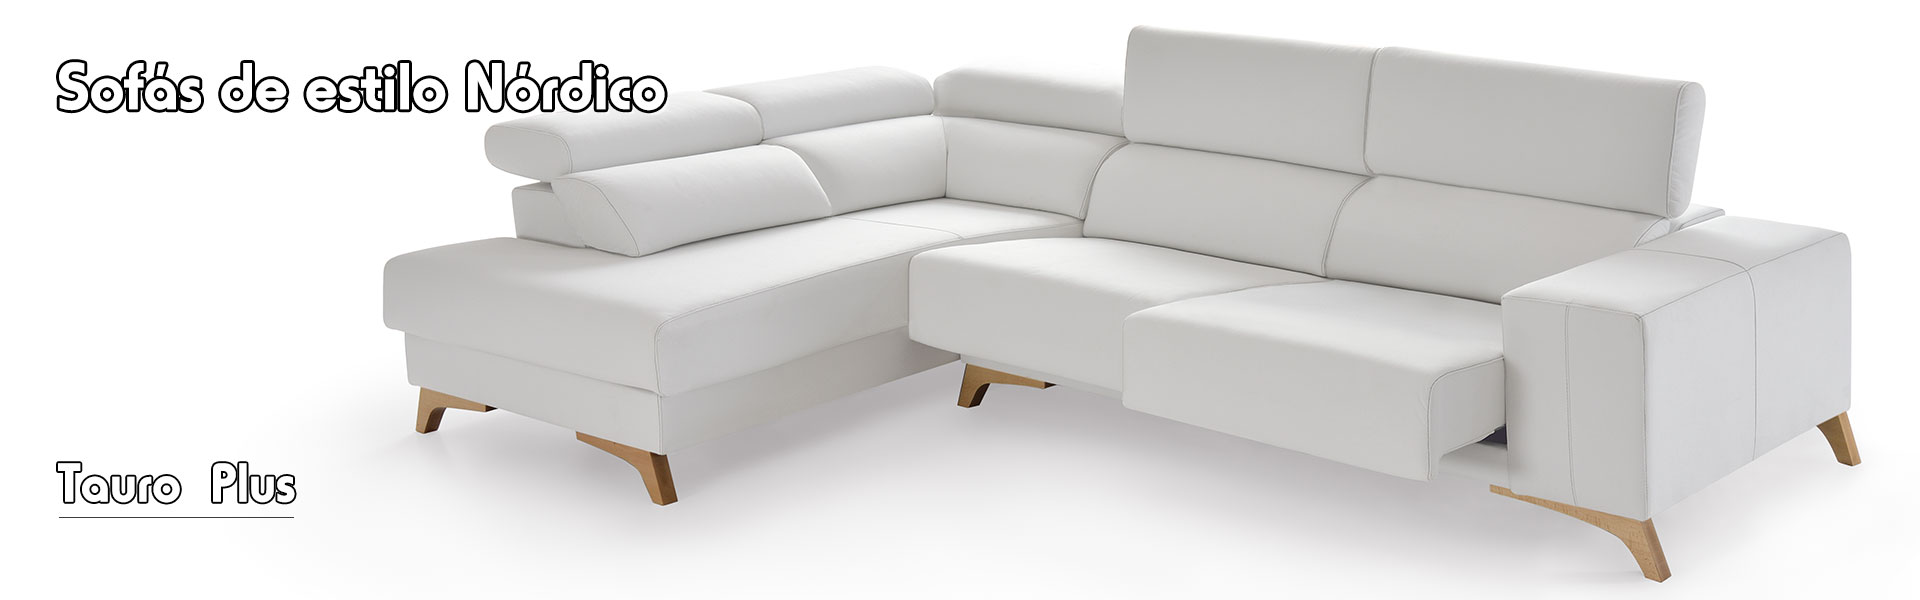 Sofa estilo nordico